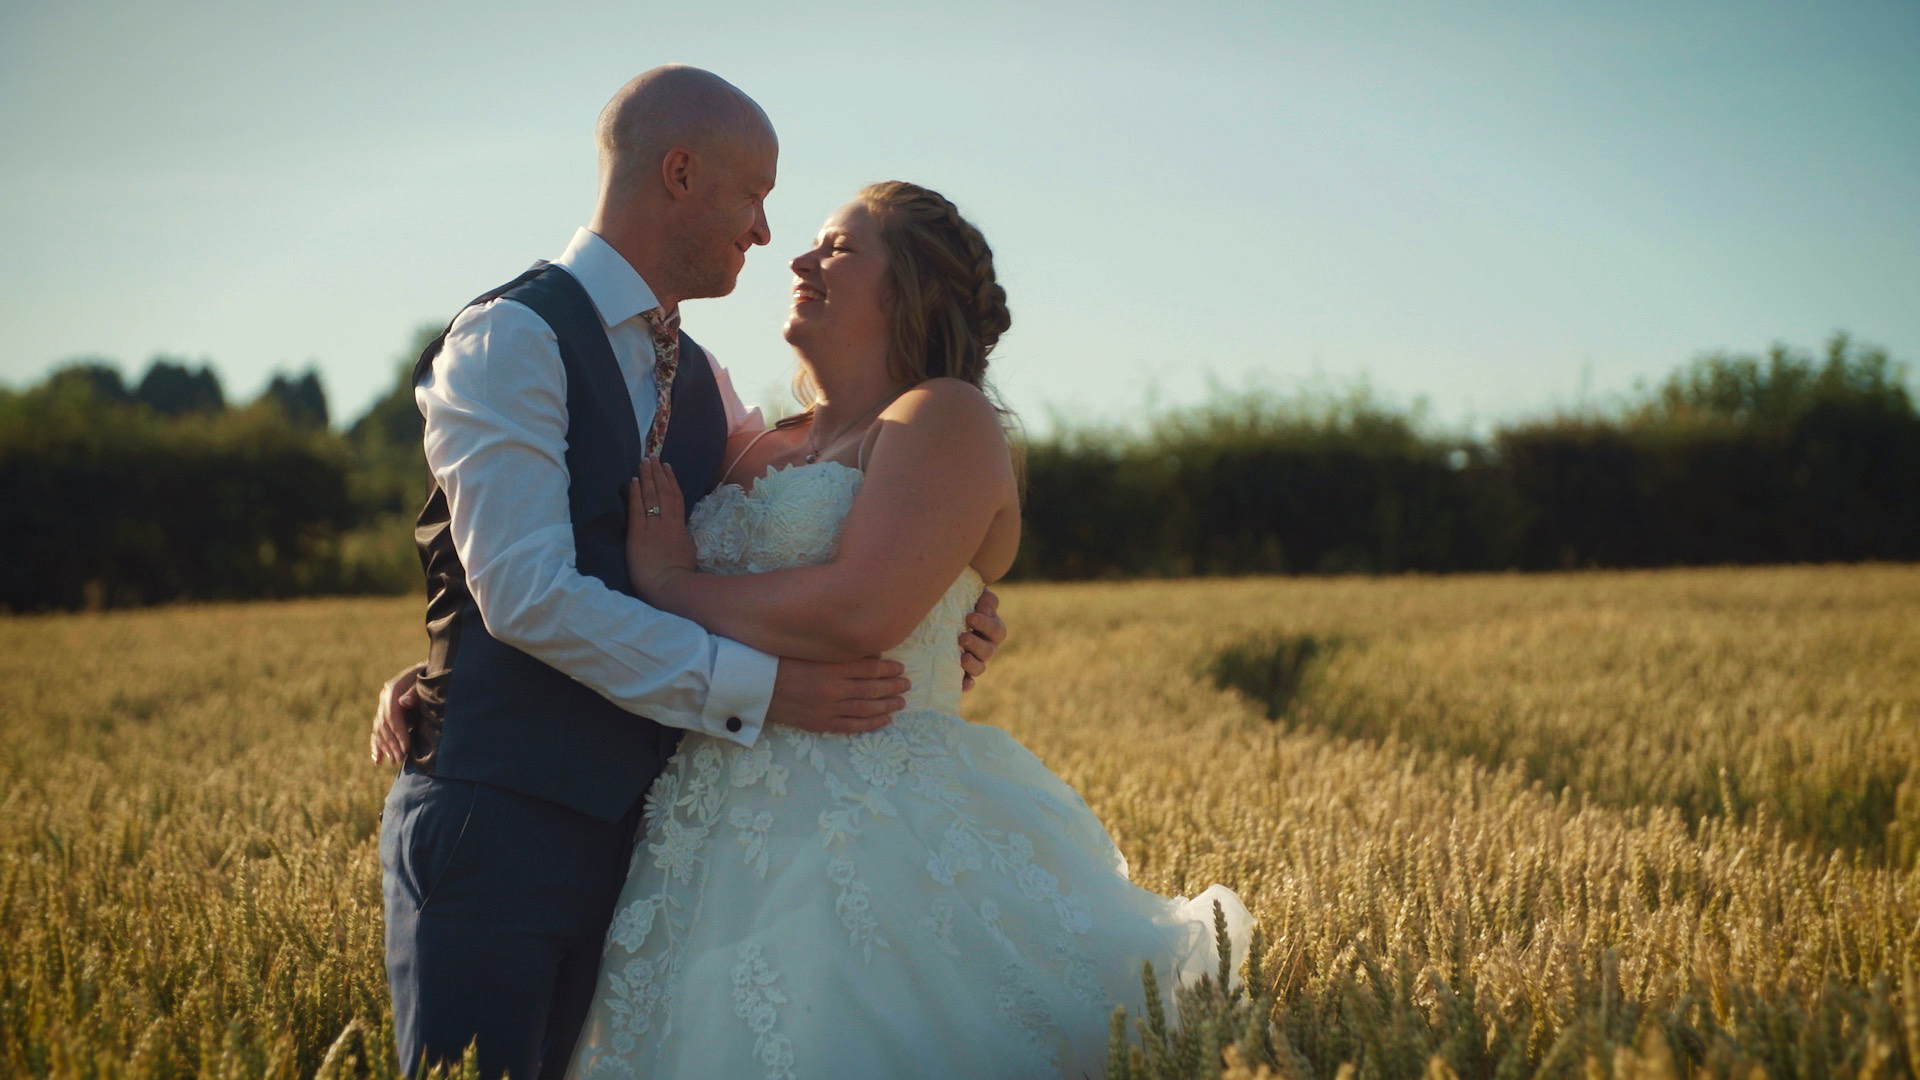 """Terri & Paul - """"Thank you so much for our wedding video. It's perfect, you captured all the moments we near saw from people chatting, kids playing and people eating all the doughnuts. It was beautifully edited and we appreciate all your hard work."""""""